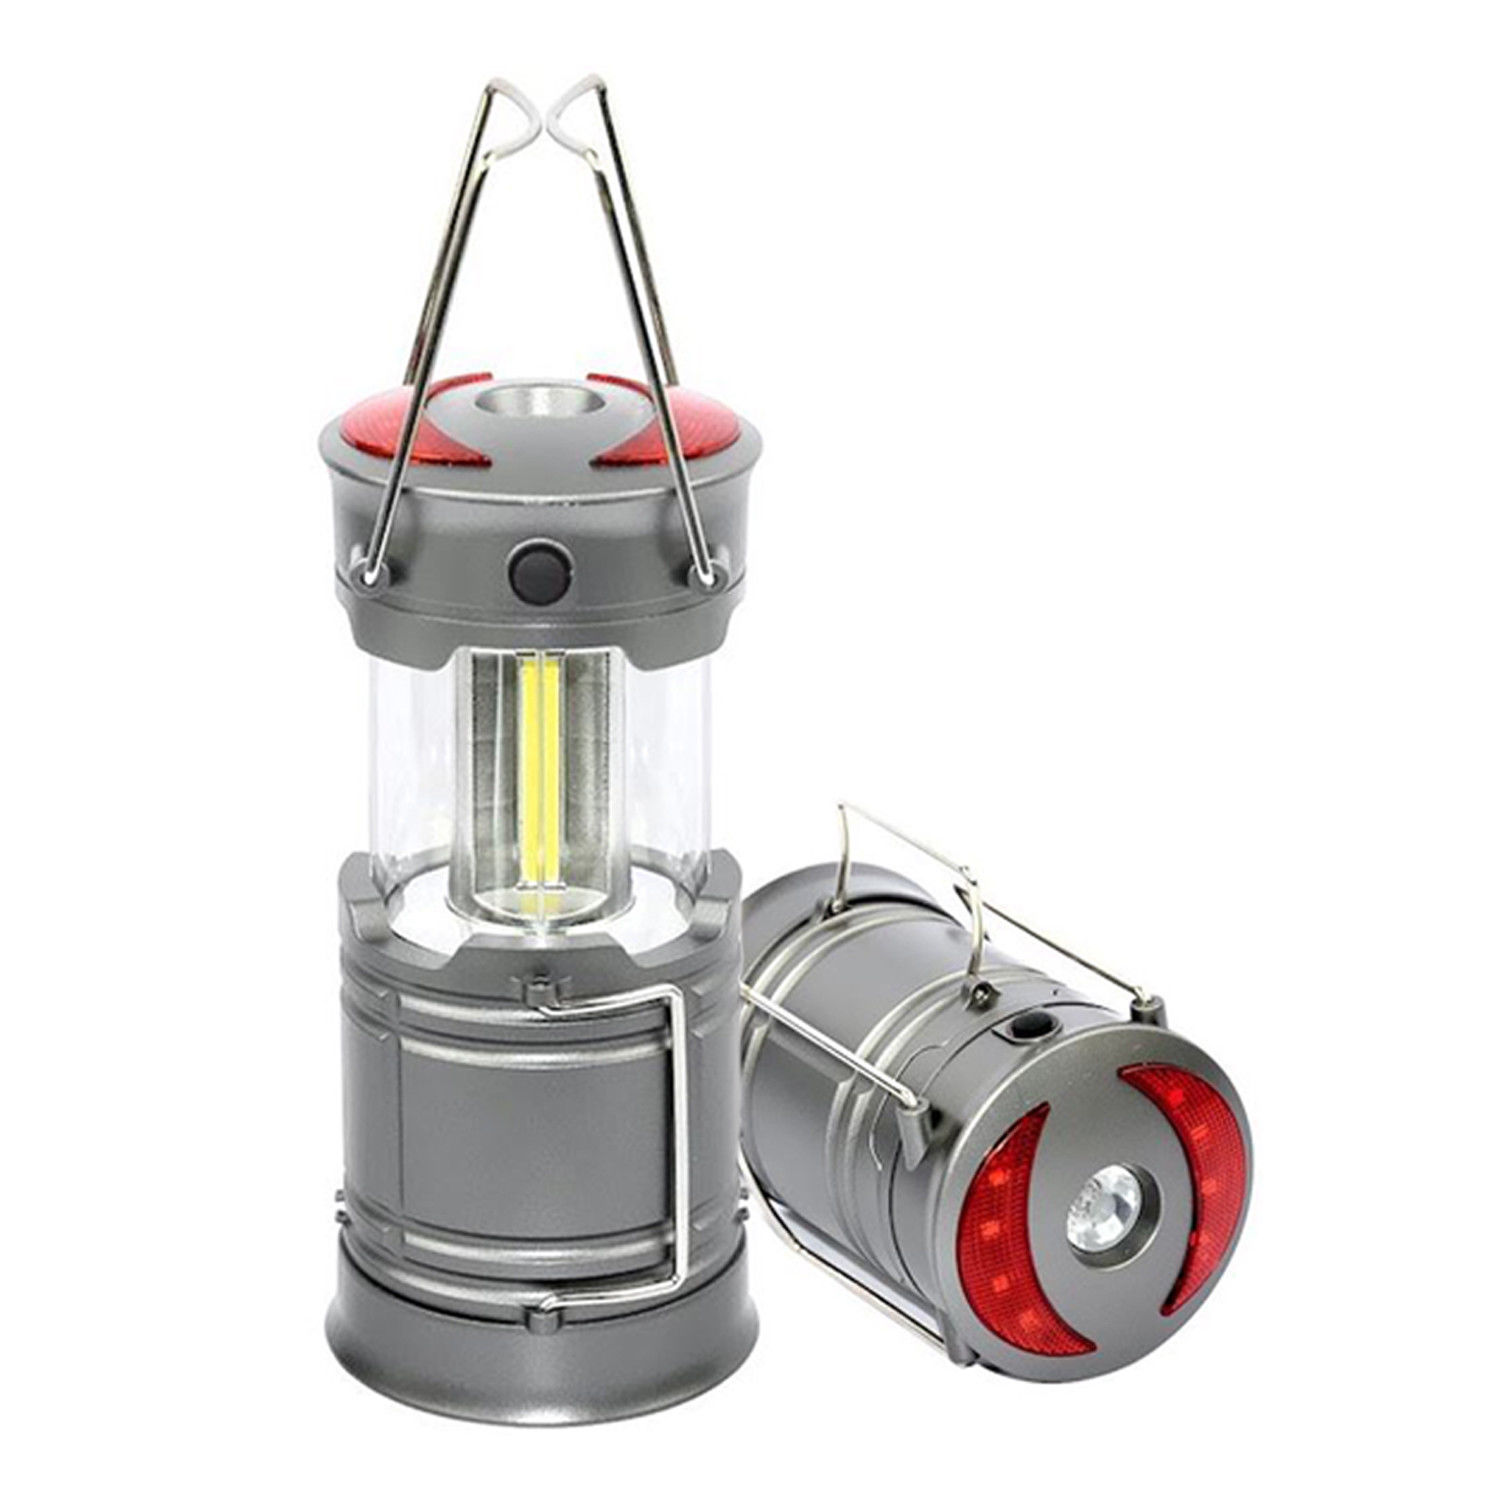 LIVABIT Ultra Bright Portable LED Collapsible Camping Lantern Light Tent Lamp